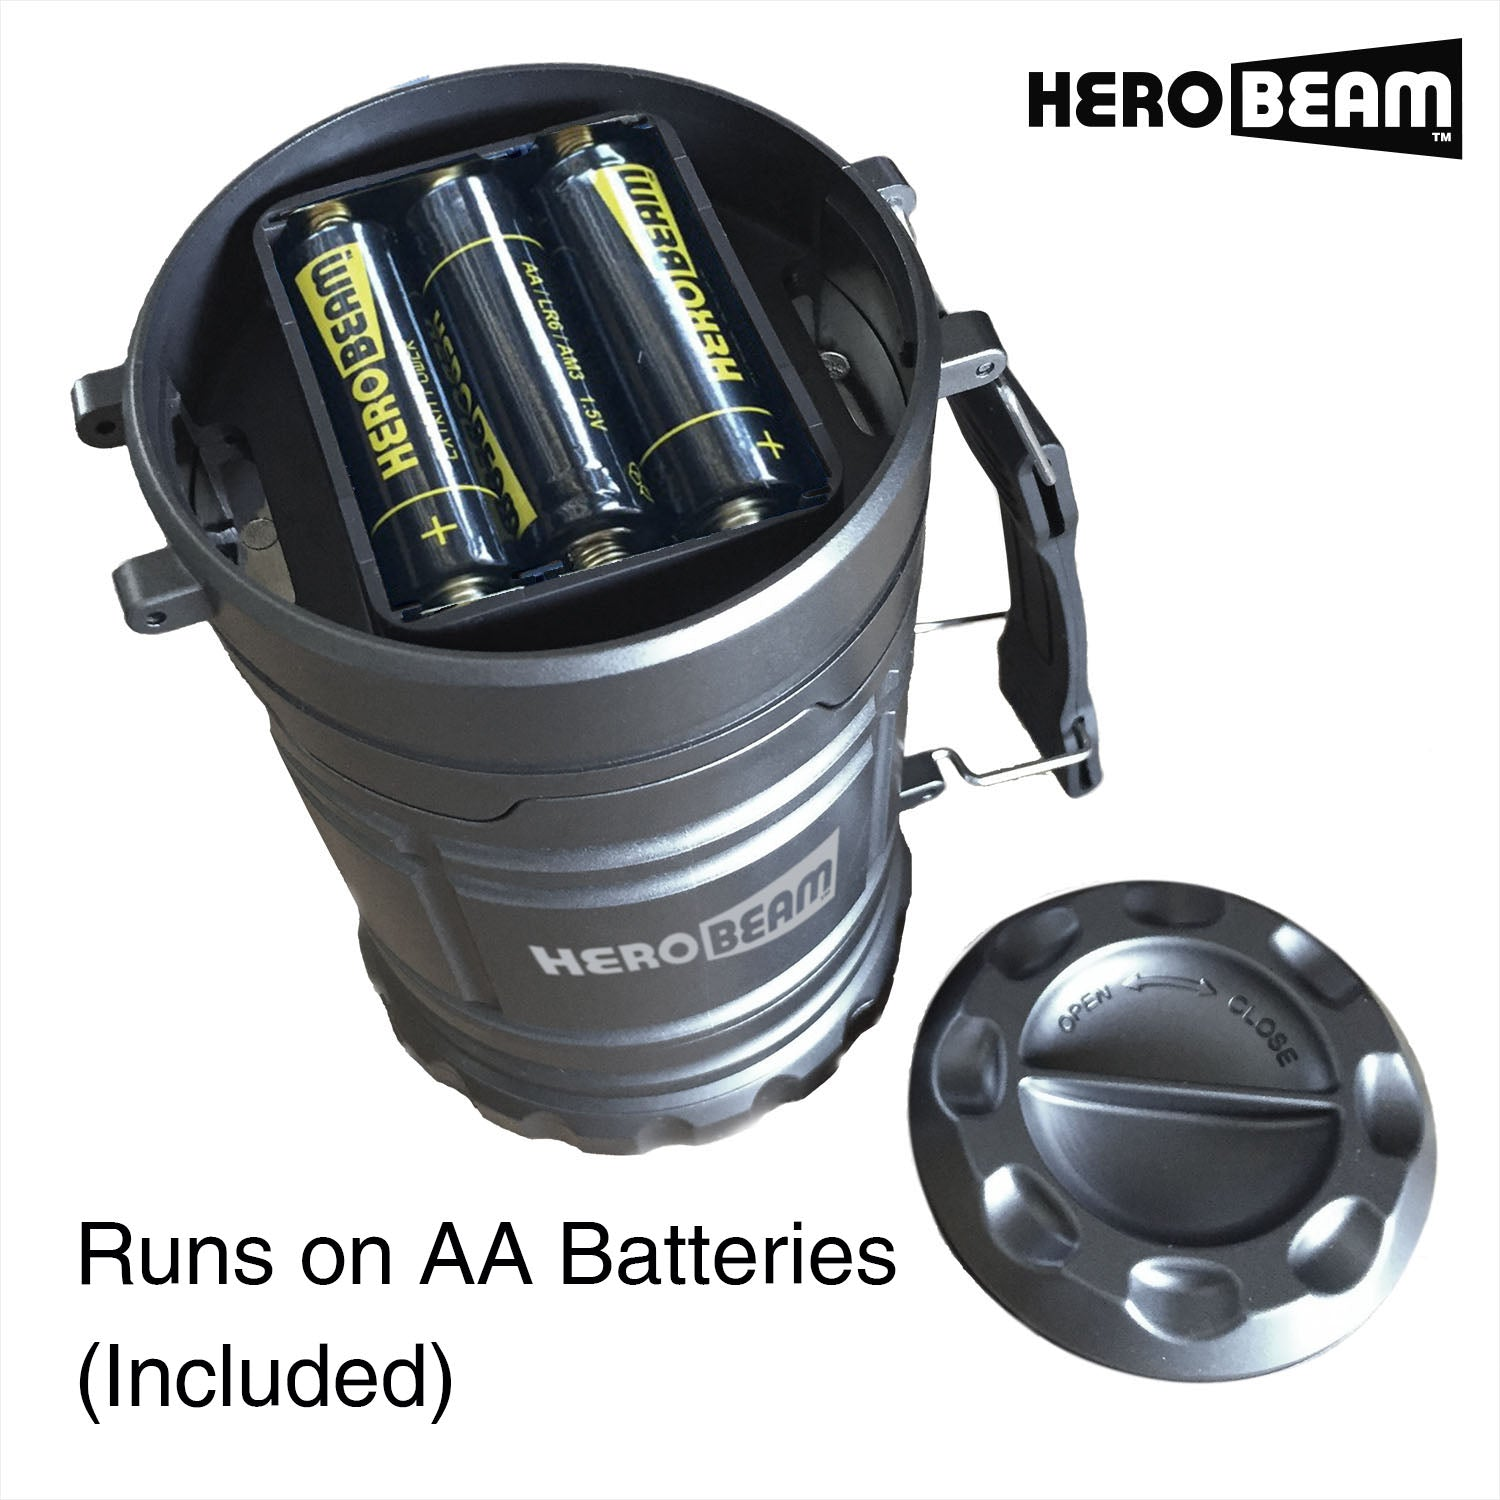 HeroBeam® LED Lantern V2.0 with Flashlight